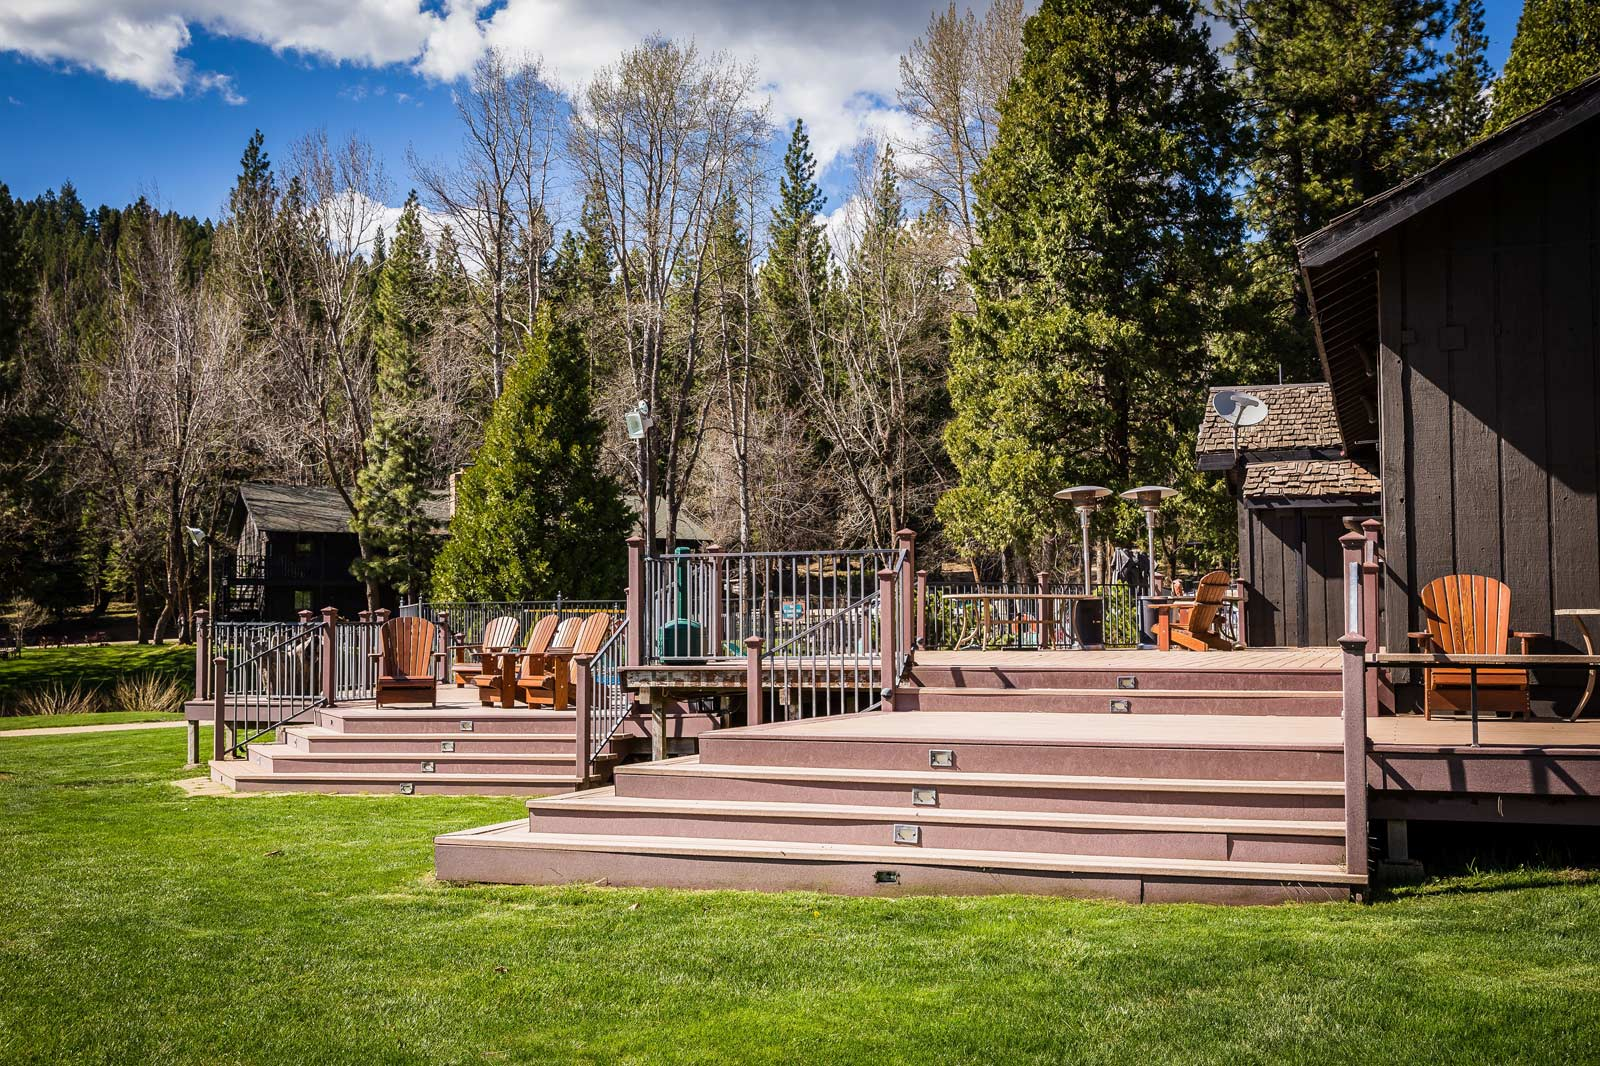 The deck outside the dining hall and saloon at the Ranch